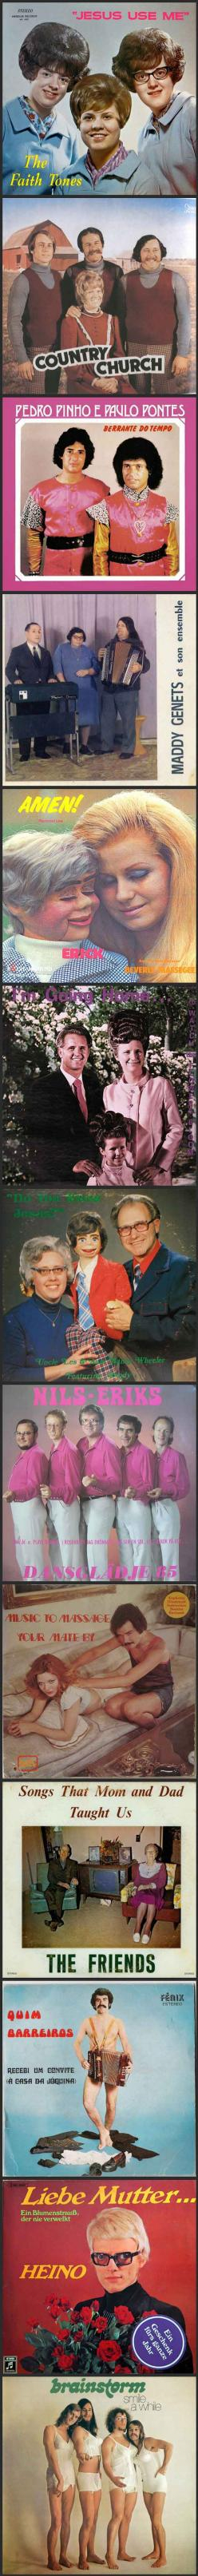 Some seriously awkward old album covers